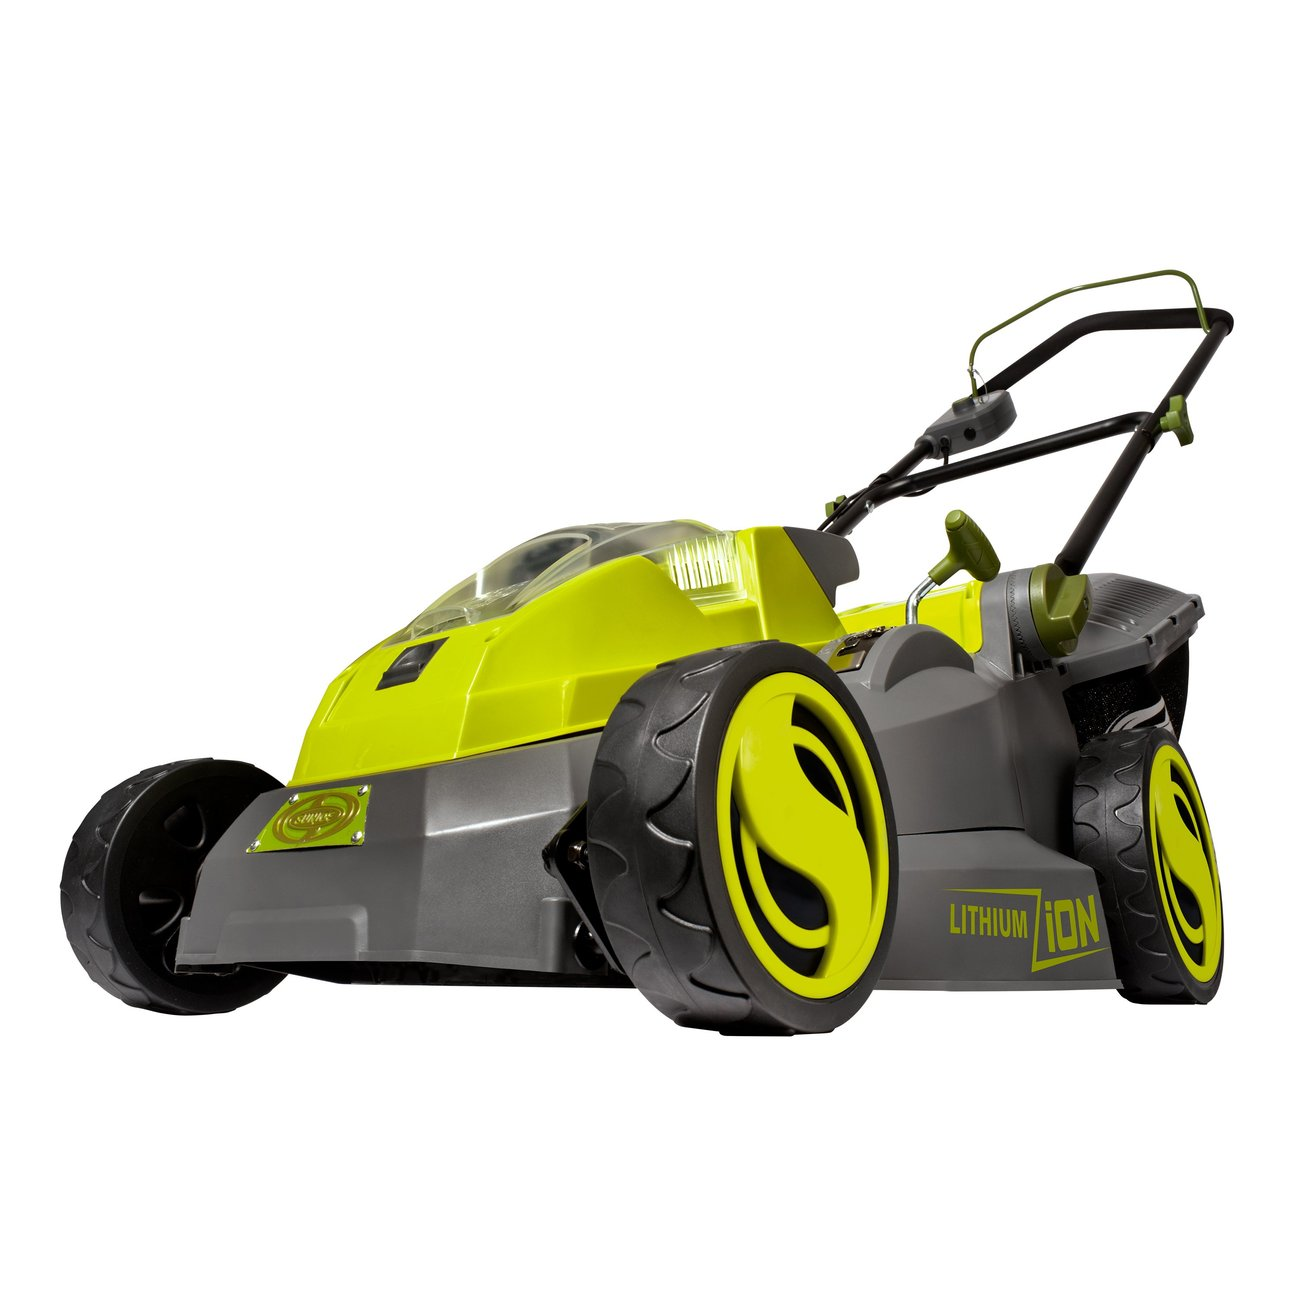 Sun Joe iON16LM-CT Cordless Lawn Mower | 16 inch | 40V | Brushless Motor (Core Tool Only)